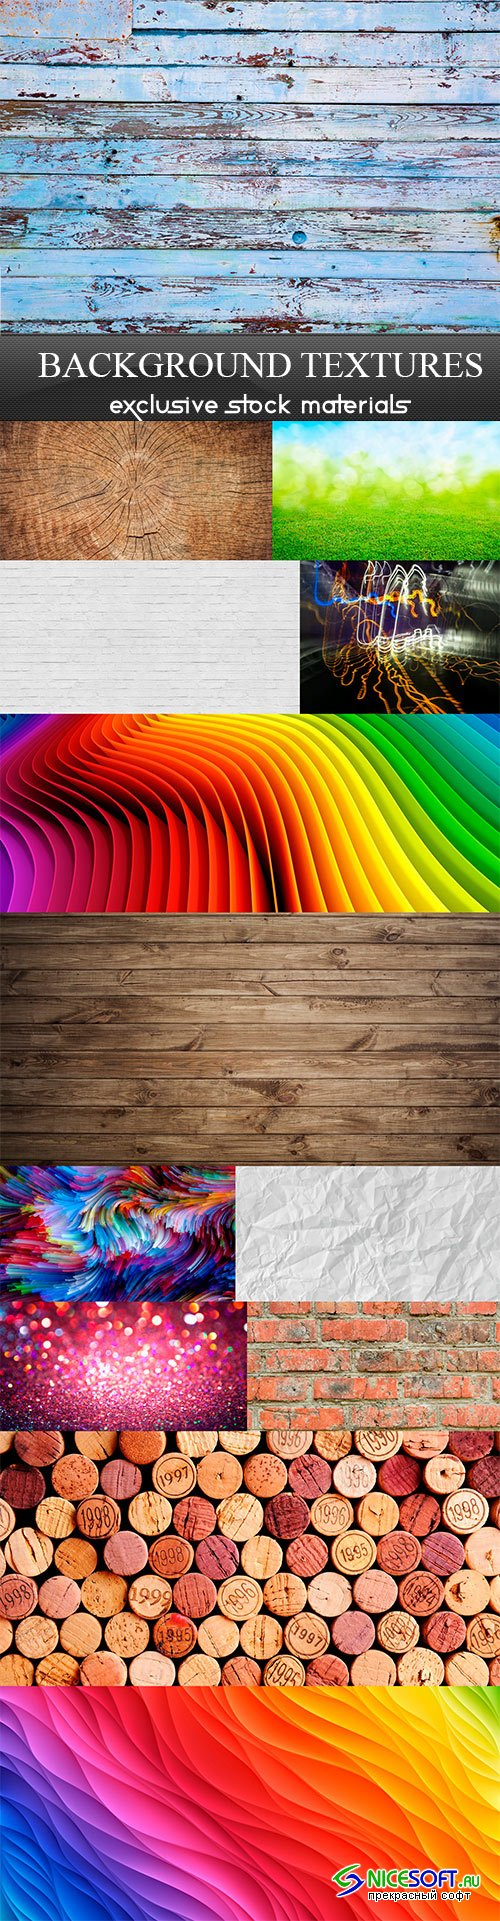 Background textures -18 UHQ JPEG